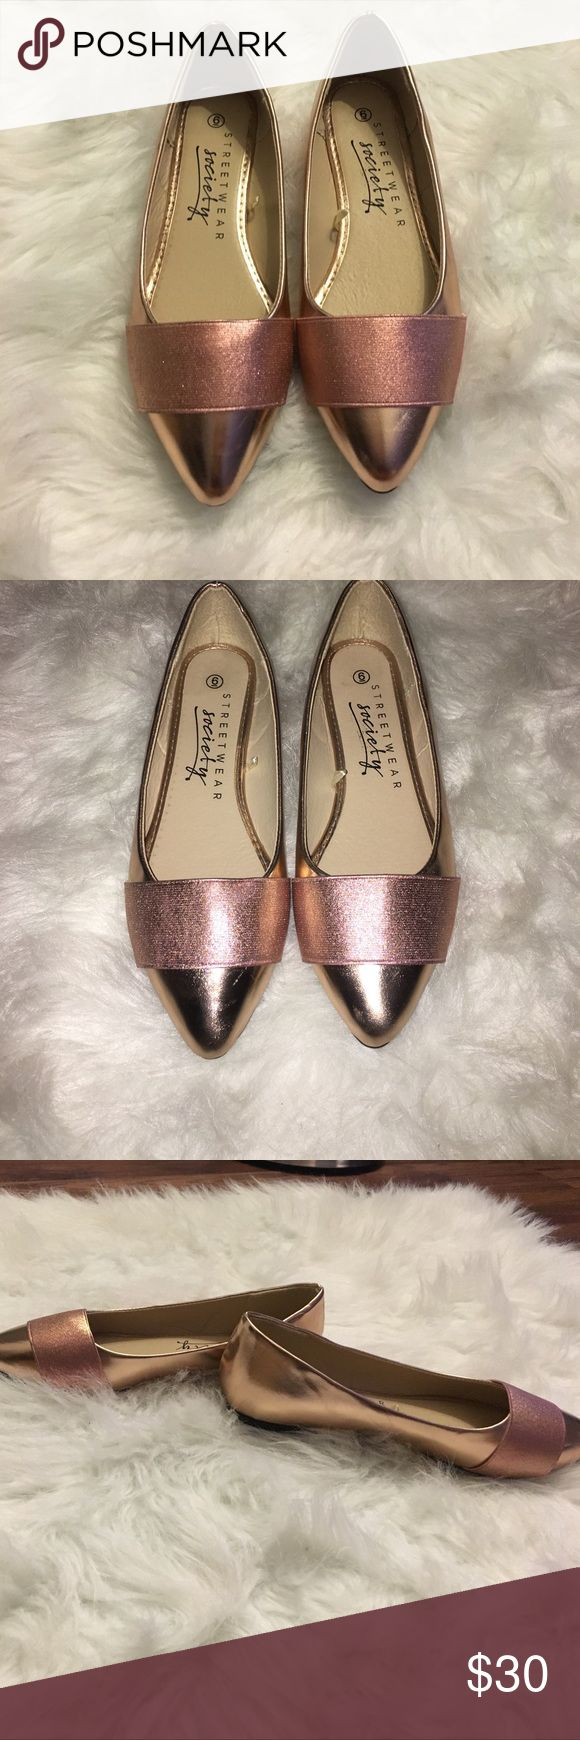 Rose Gold Flats Brand New 🌟Beautiful Rose Gold Flats 🌟BRAND NEW- DOES NOT COME WITH BOX 🌟Beautiful rose gold color-pictures do not do these shoes justice😍 🌟Padded insole Shoes Flats & Loafers